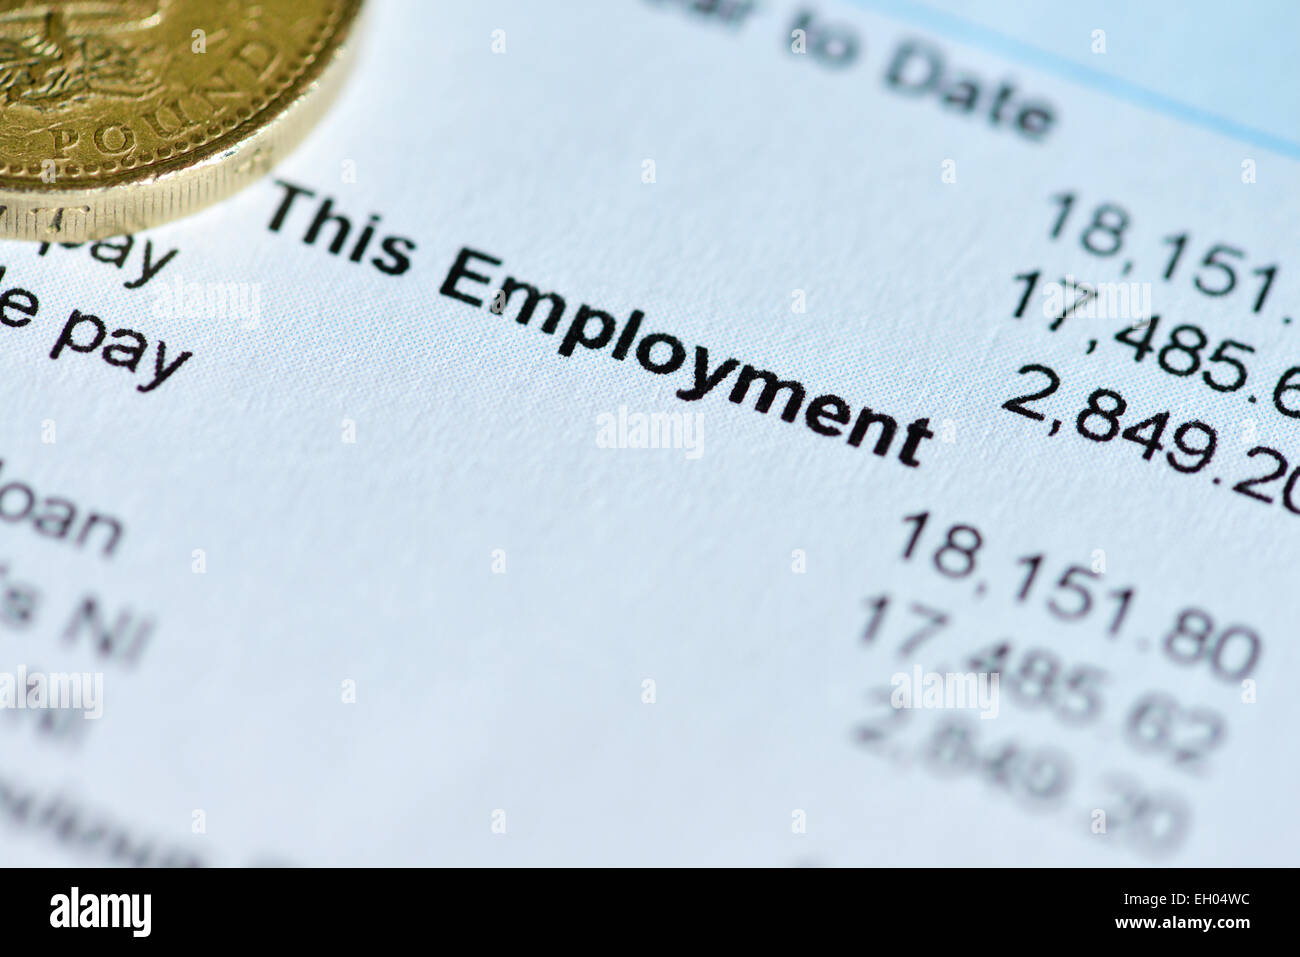 A payslip detailing amount of wages paid - Stock Image